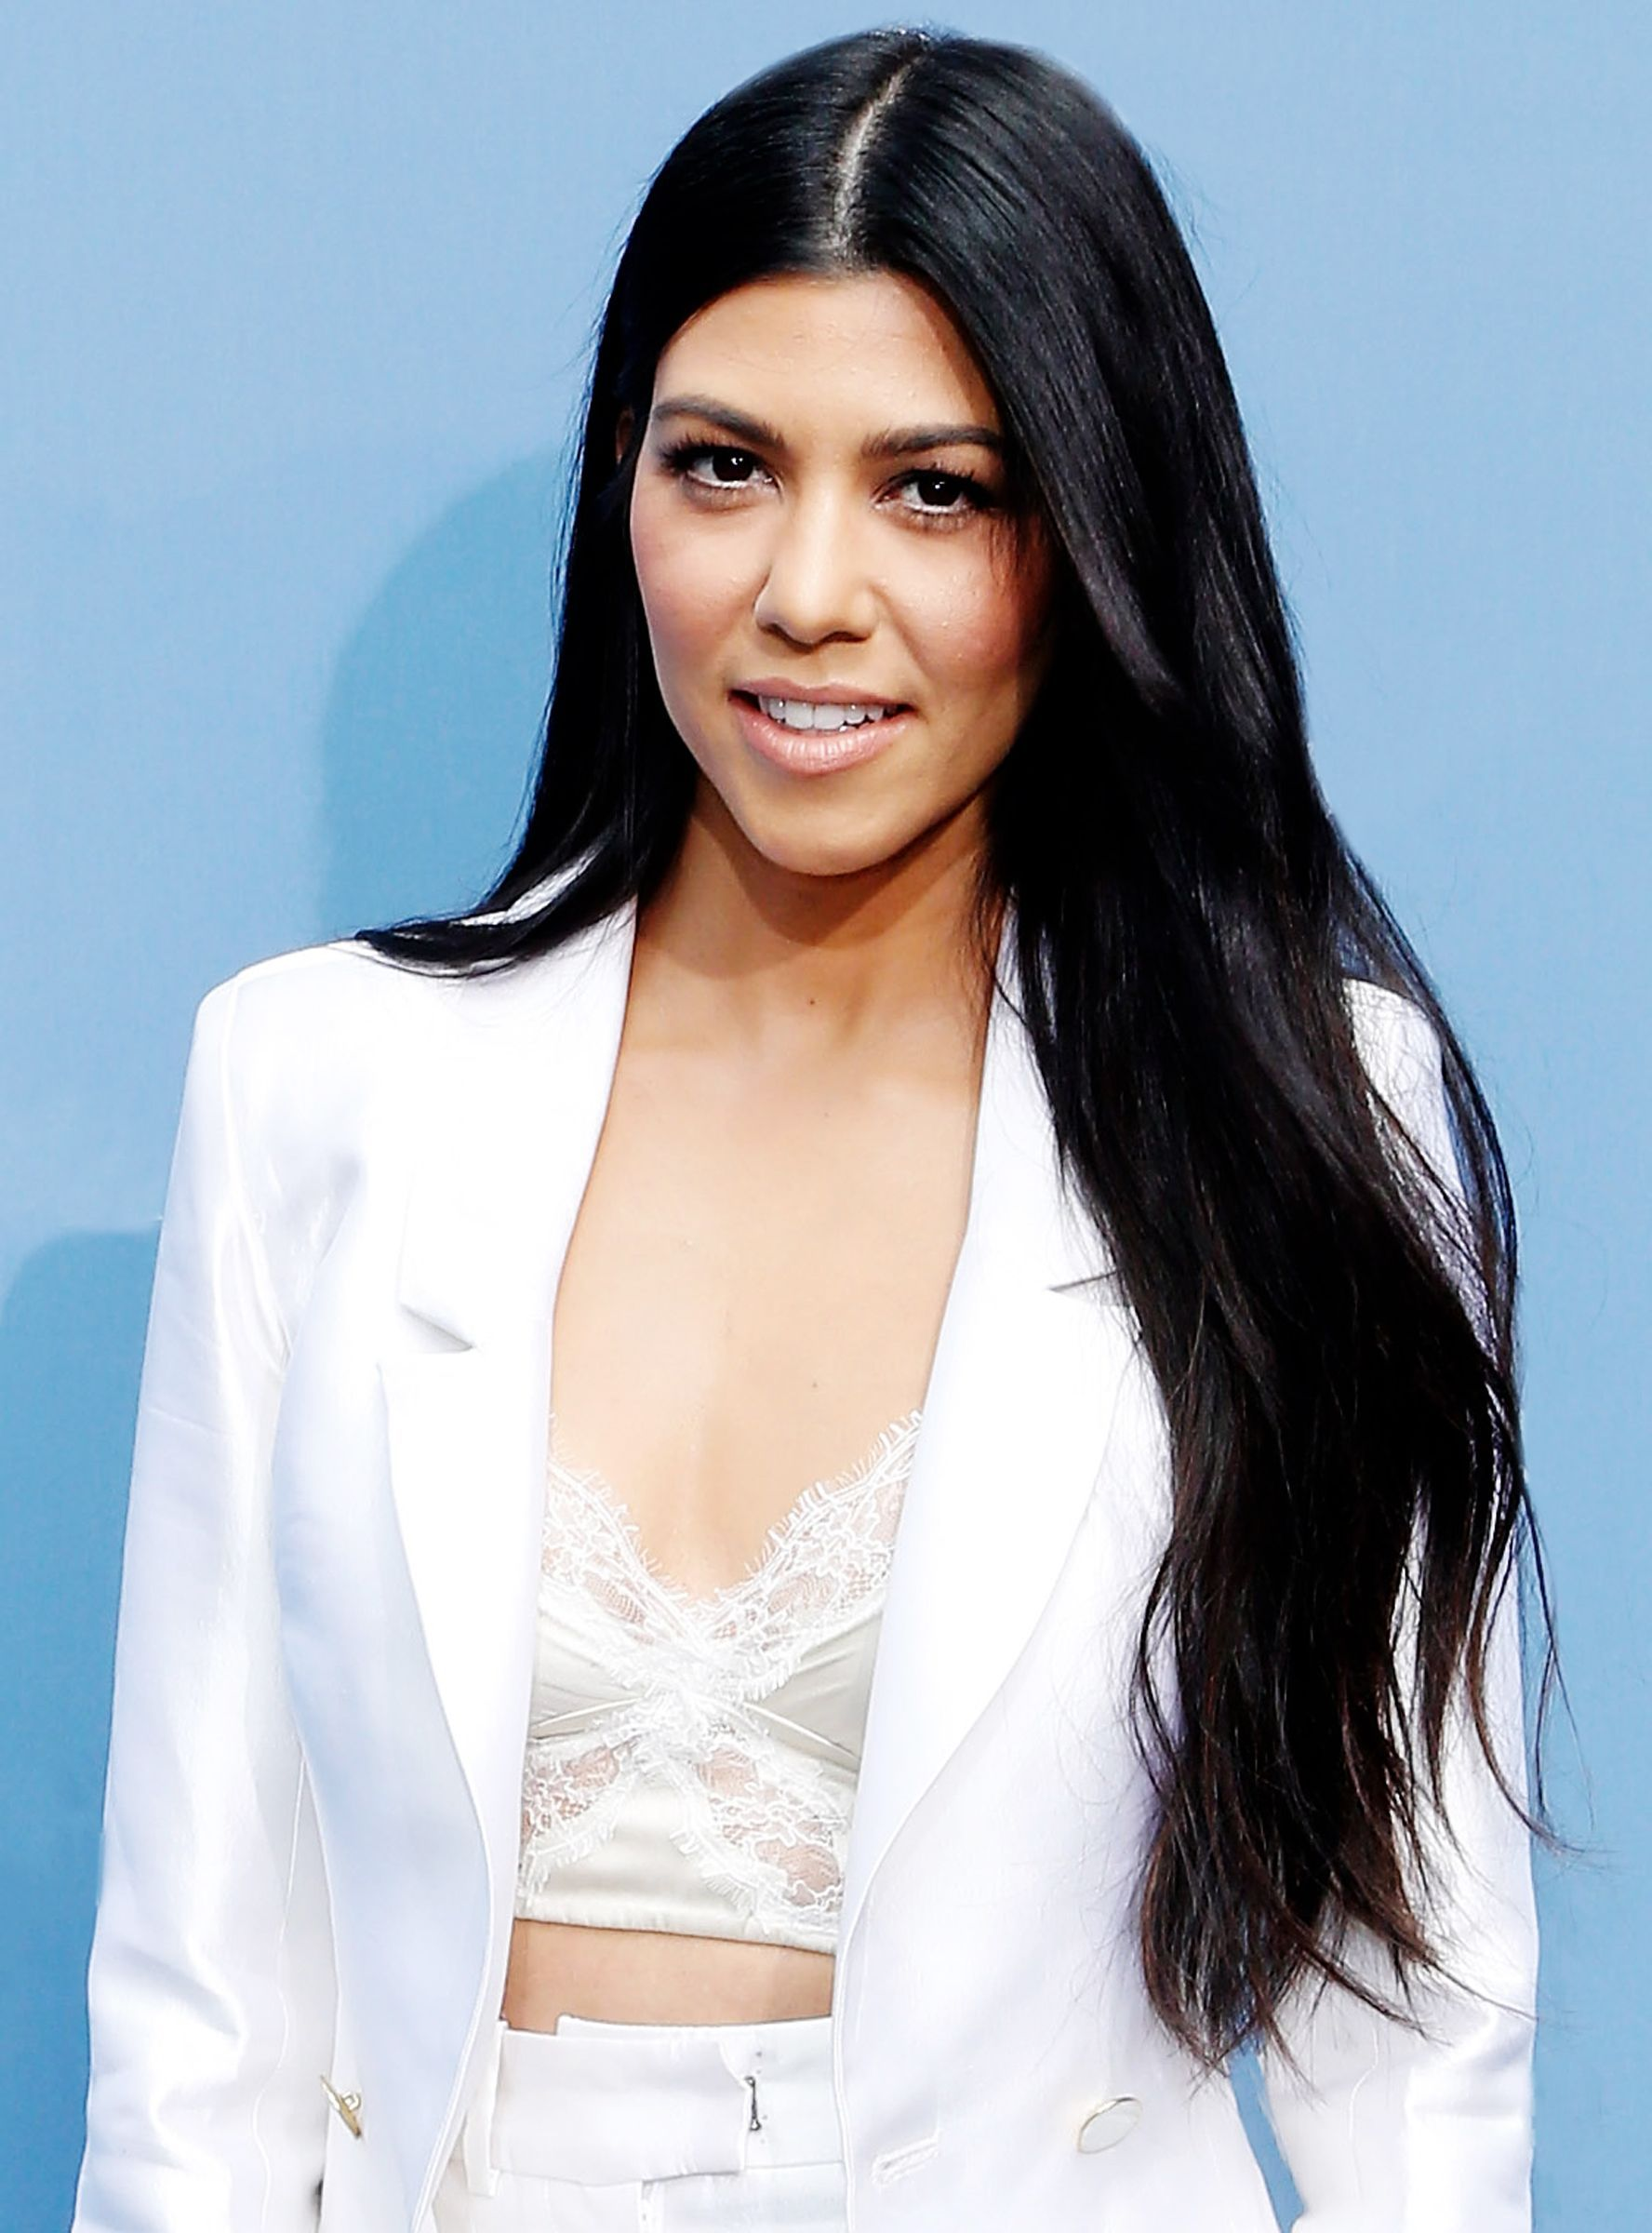 The One Word Kourtney Kardashian Doesnut Want Her Daughter To Hear